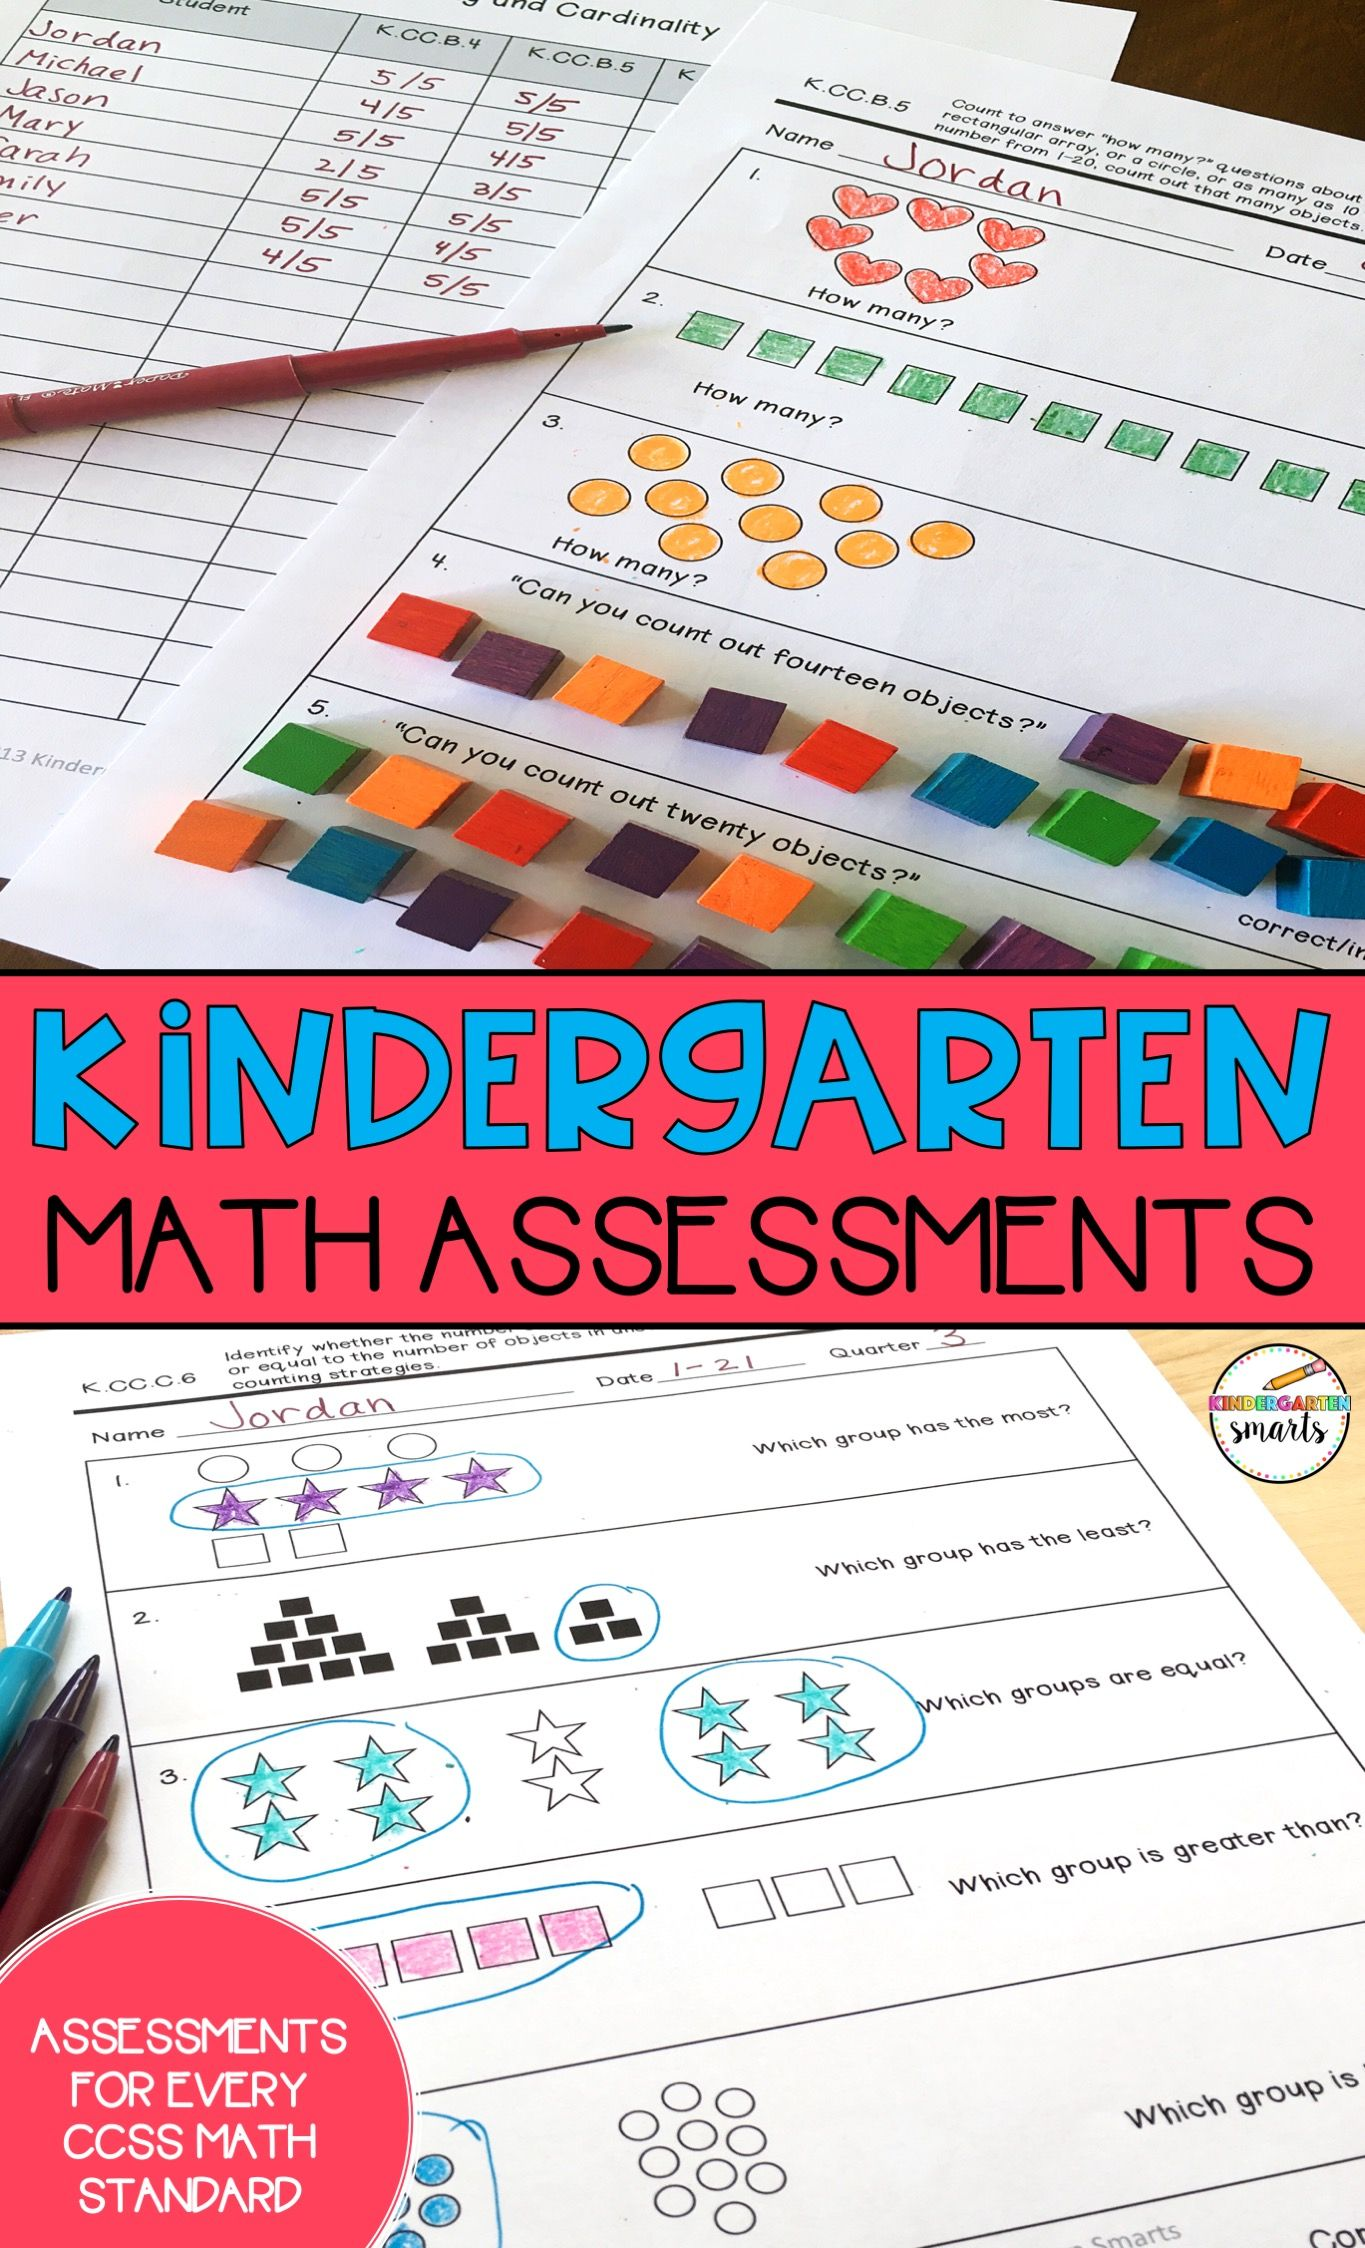 These Math Assessments Are A Great Tool For You To Keep